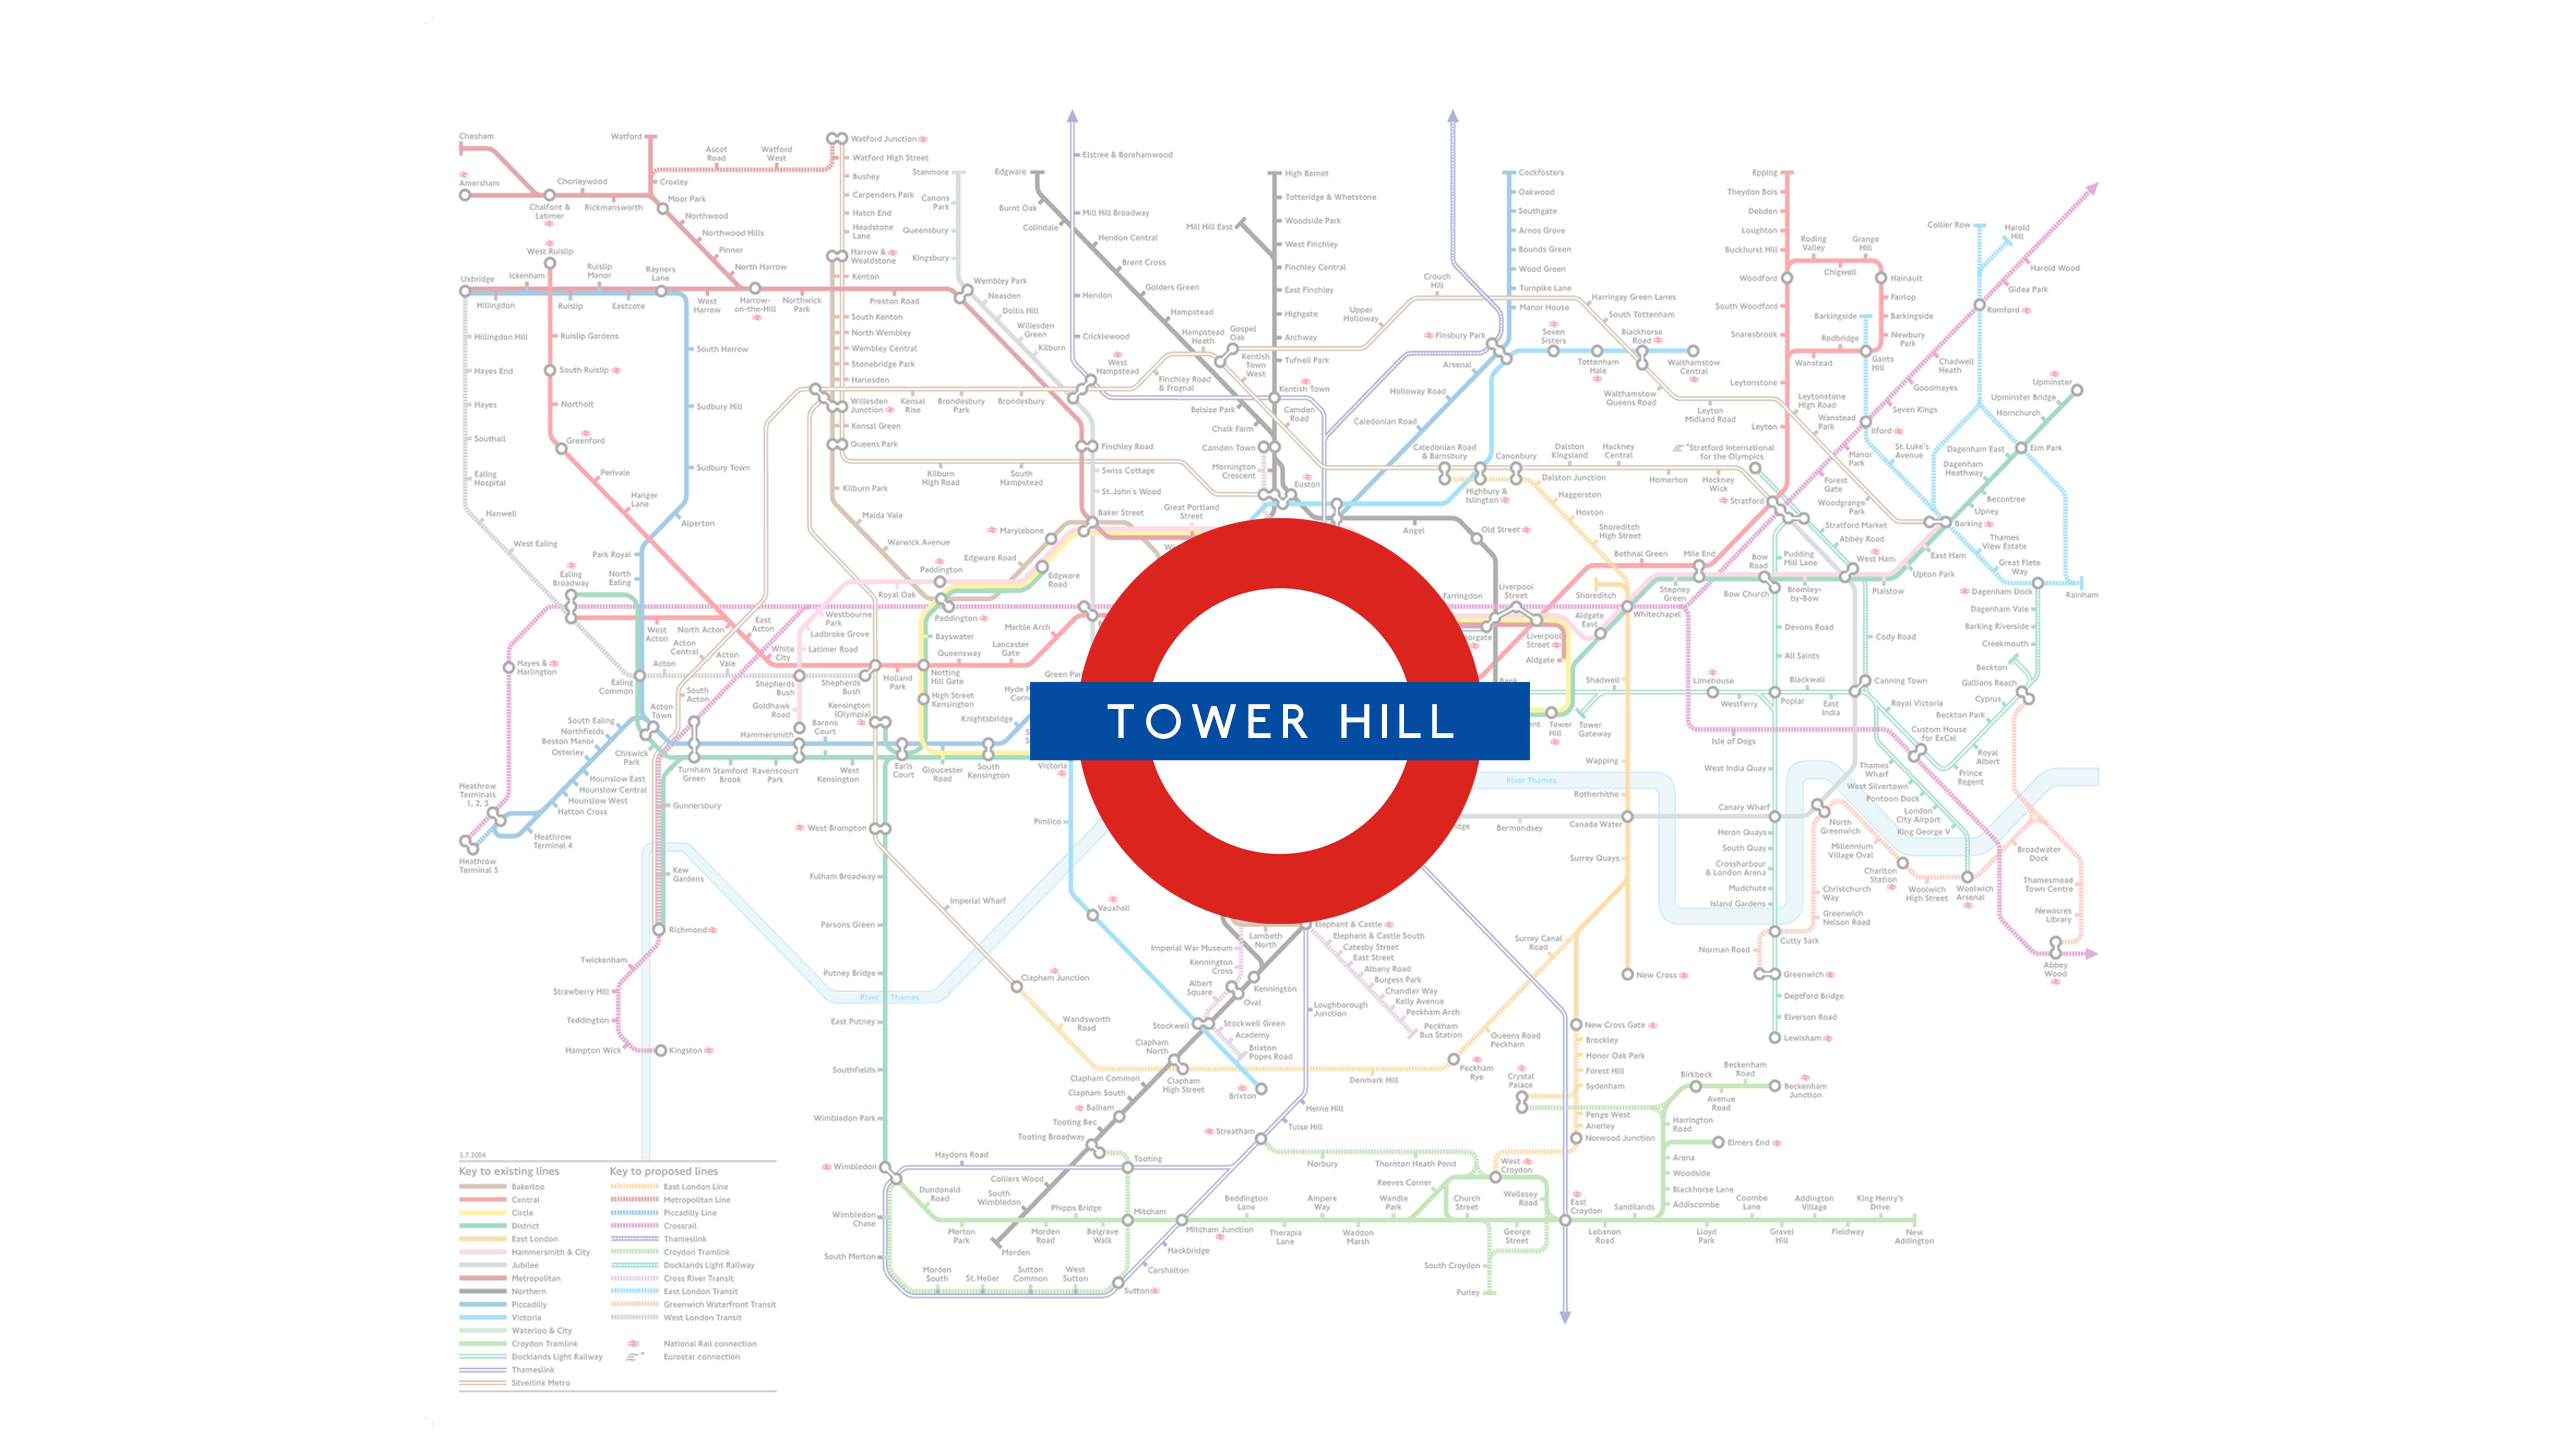 Tower Hill (Map)